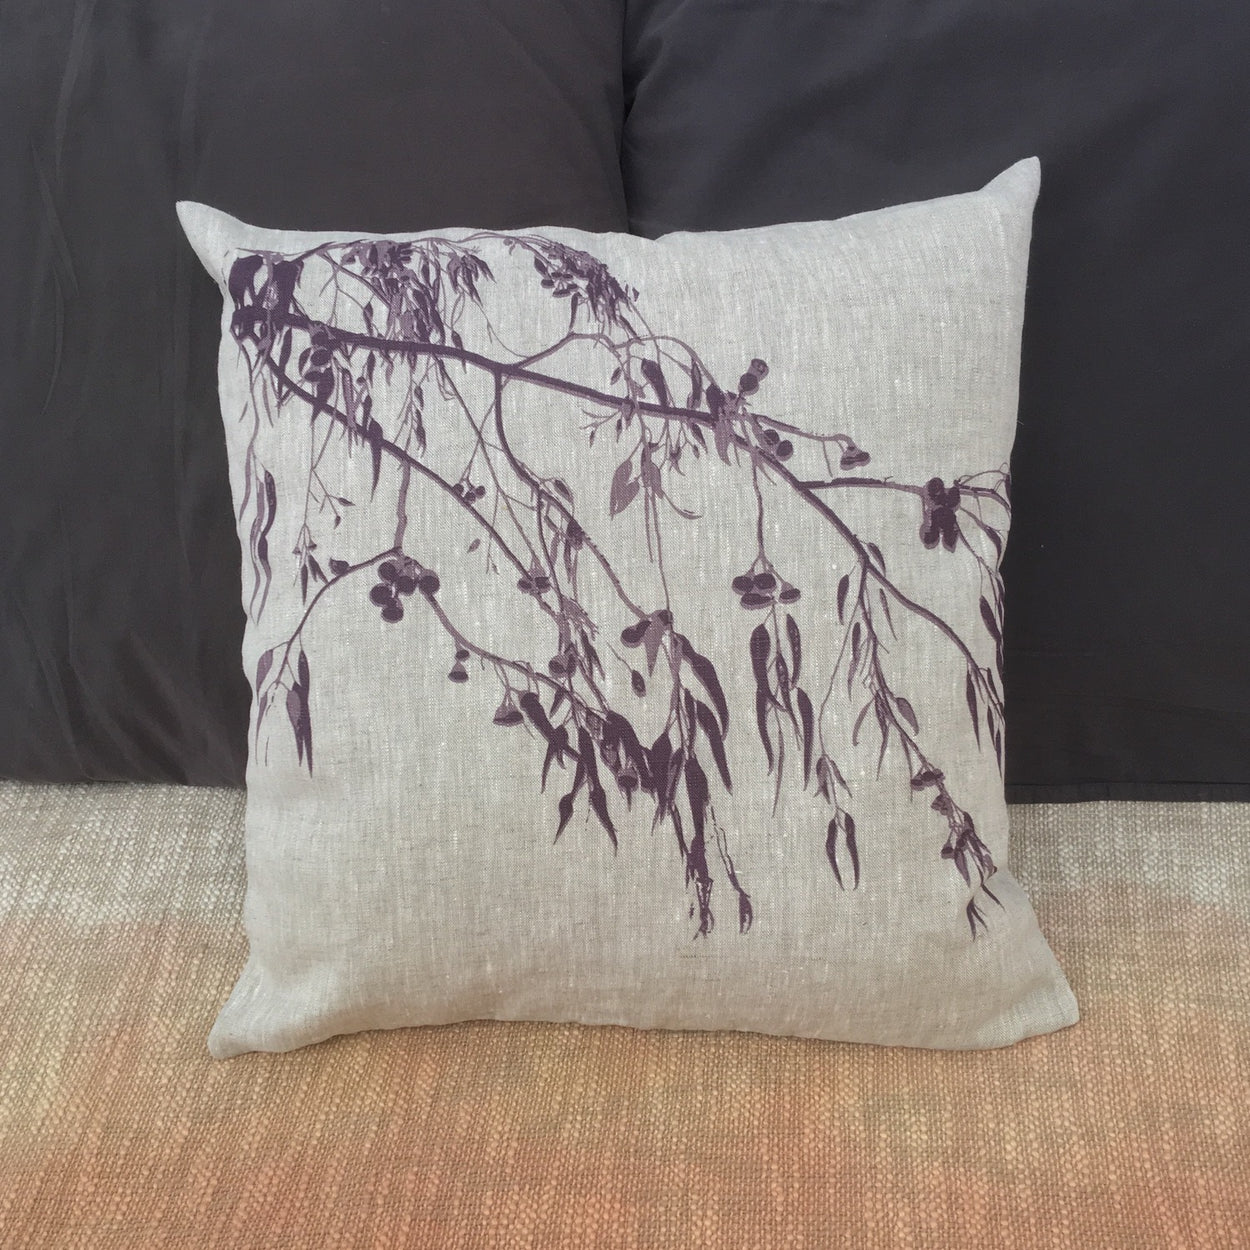 Photograph of a eucalyptus screenprinted on a cushion cover.